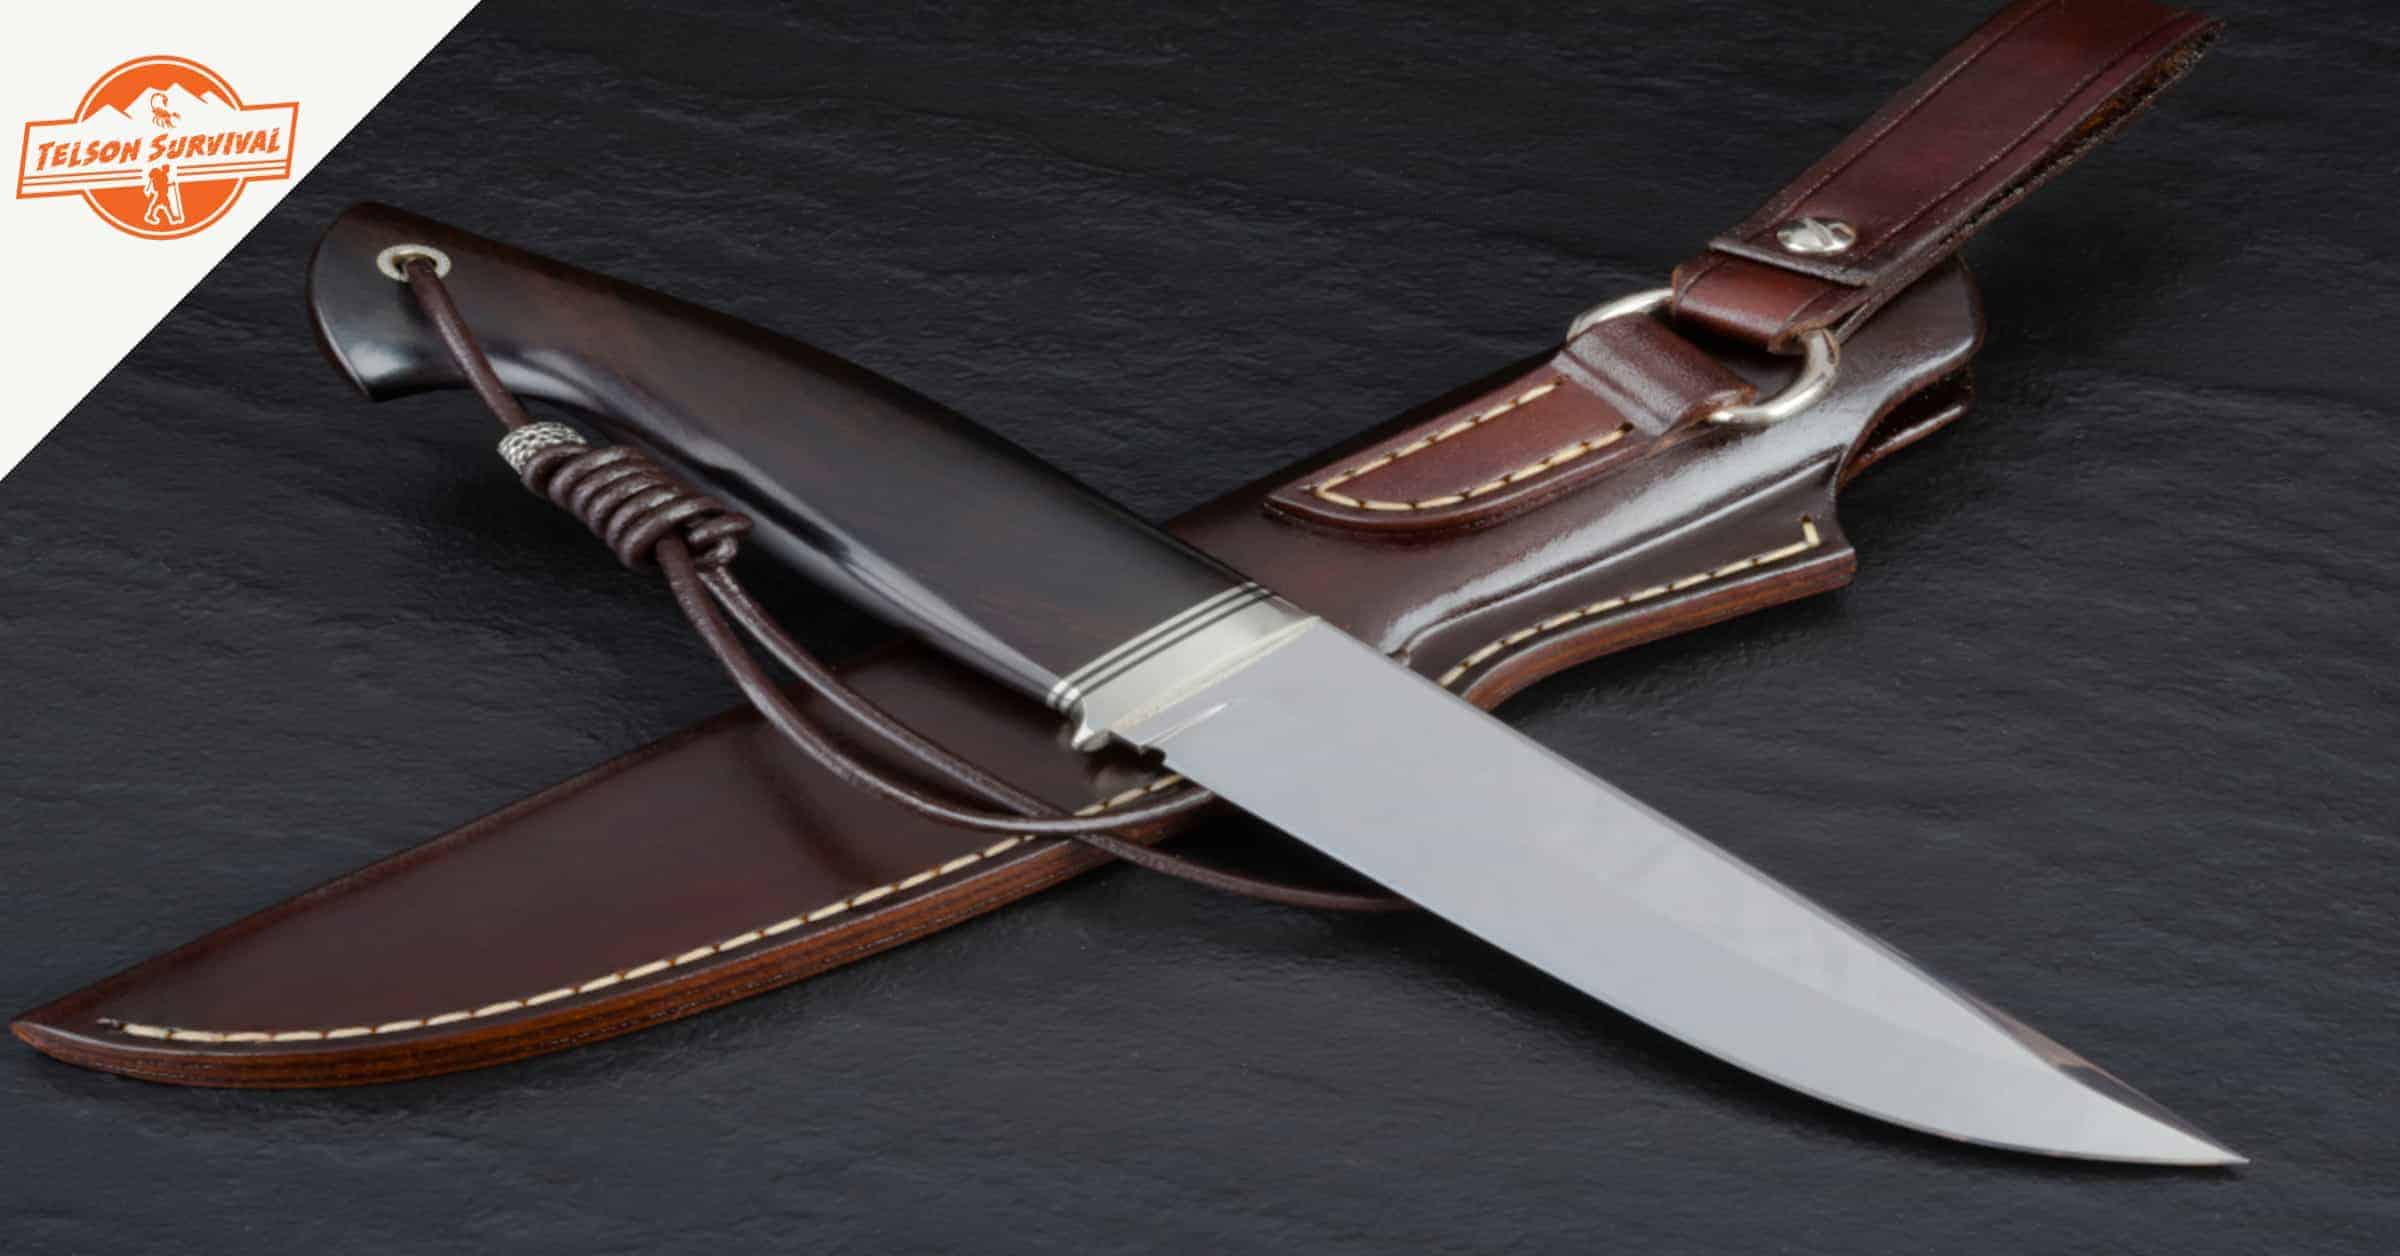 Survival knife with sheath